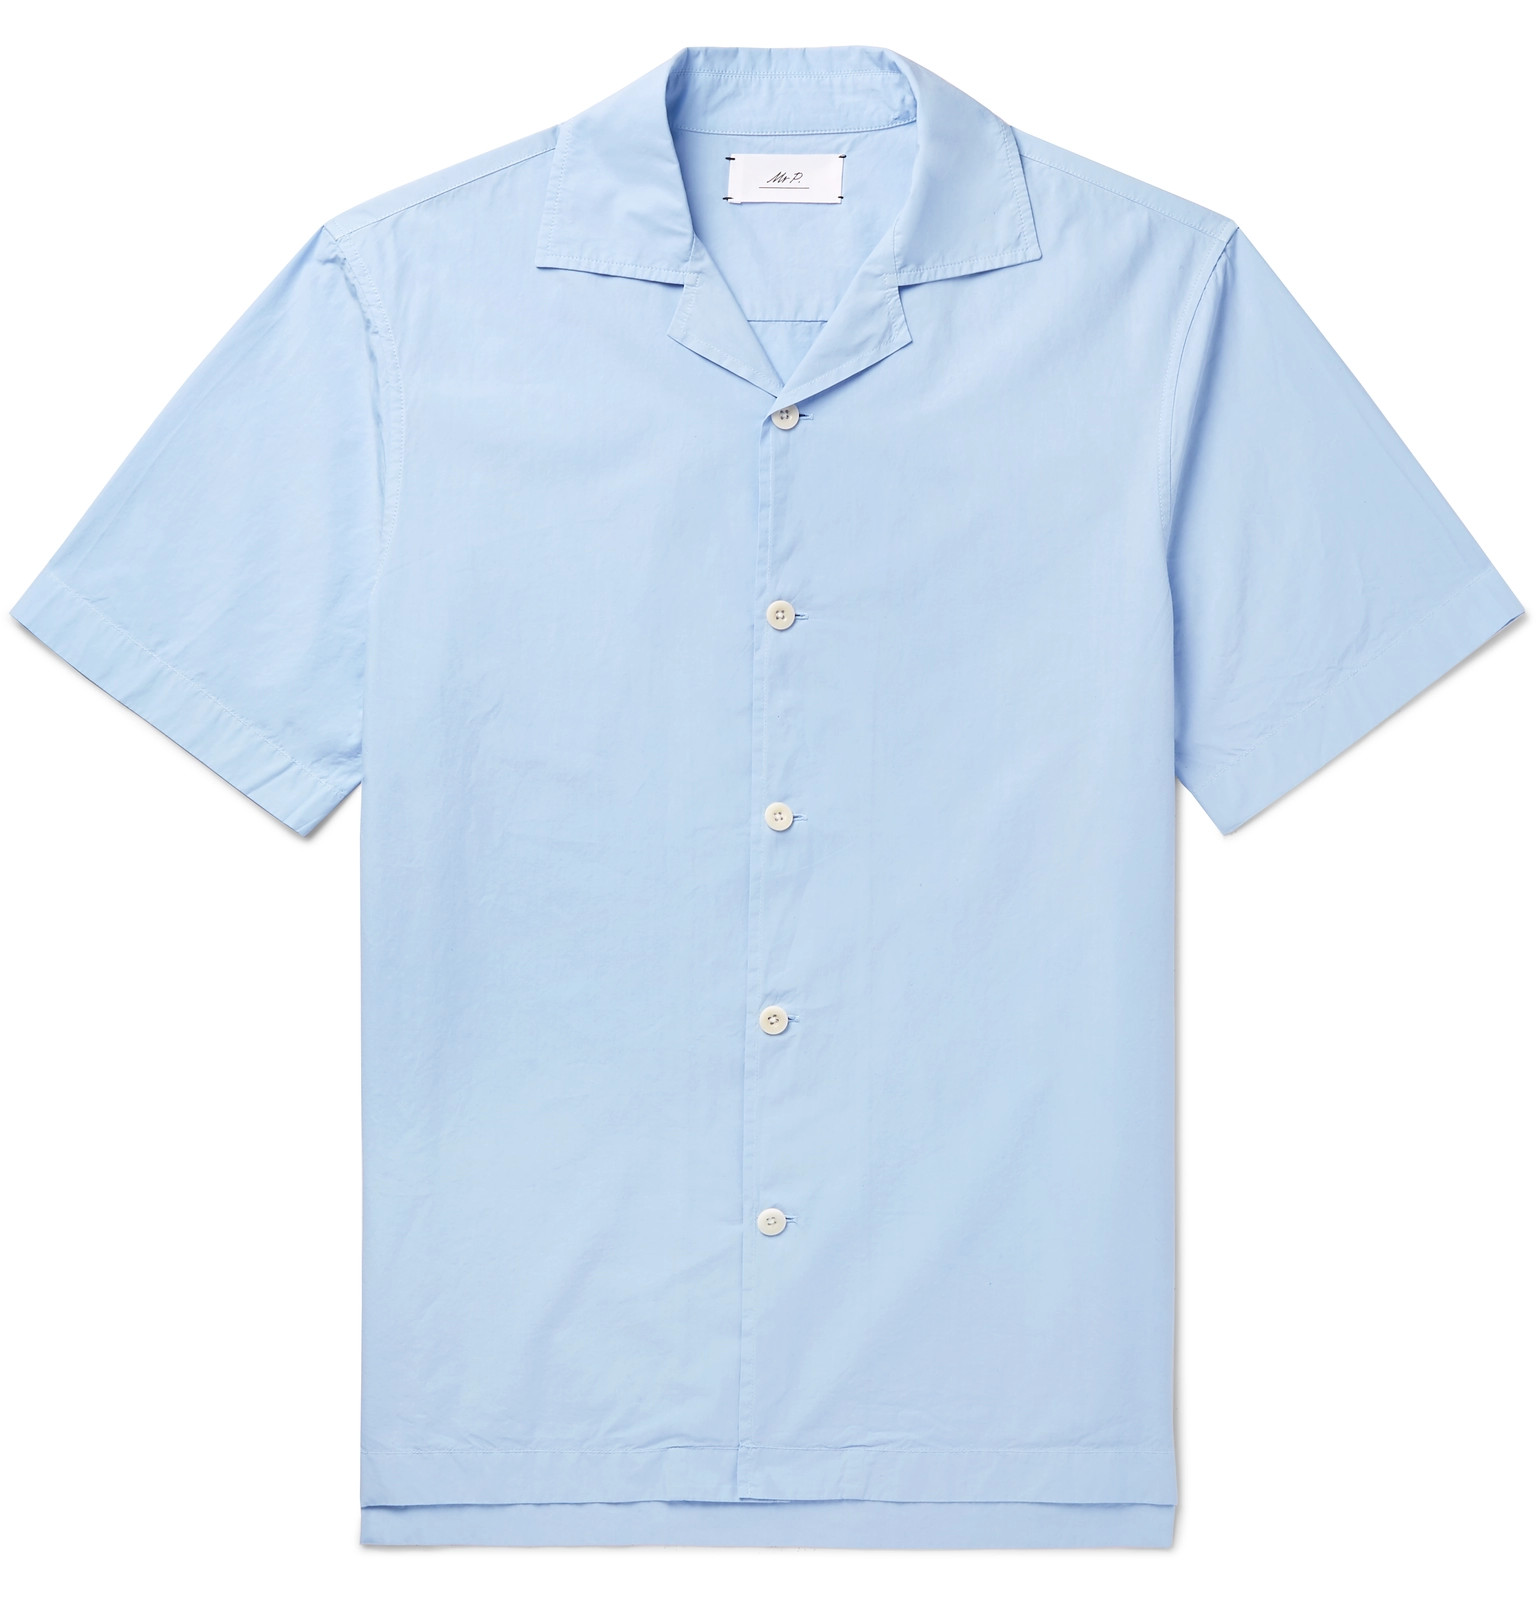 Mr. P Short sleeve shirt